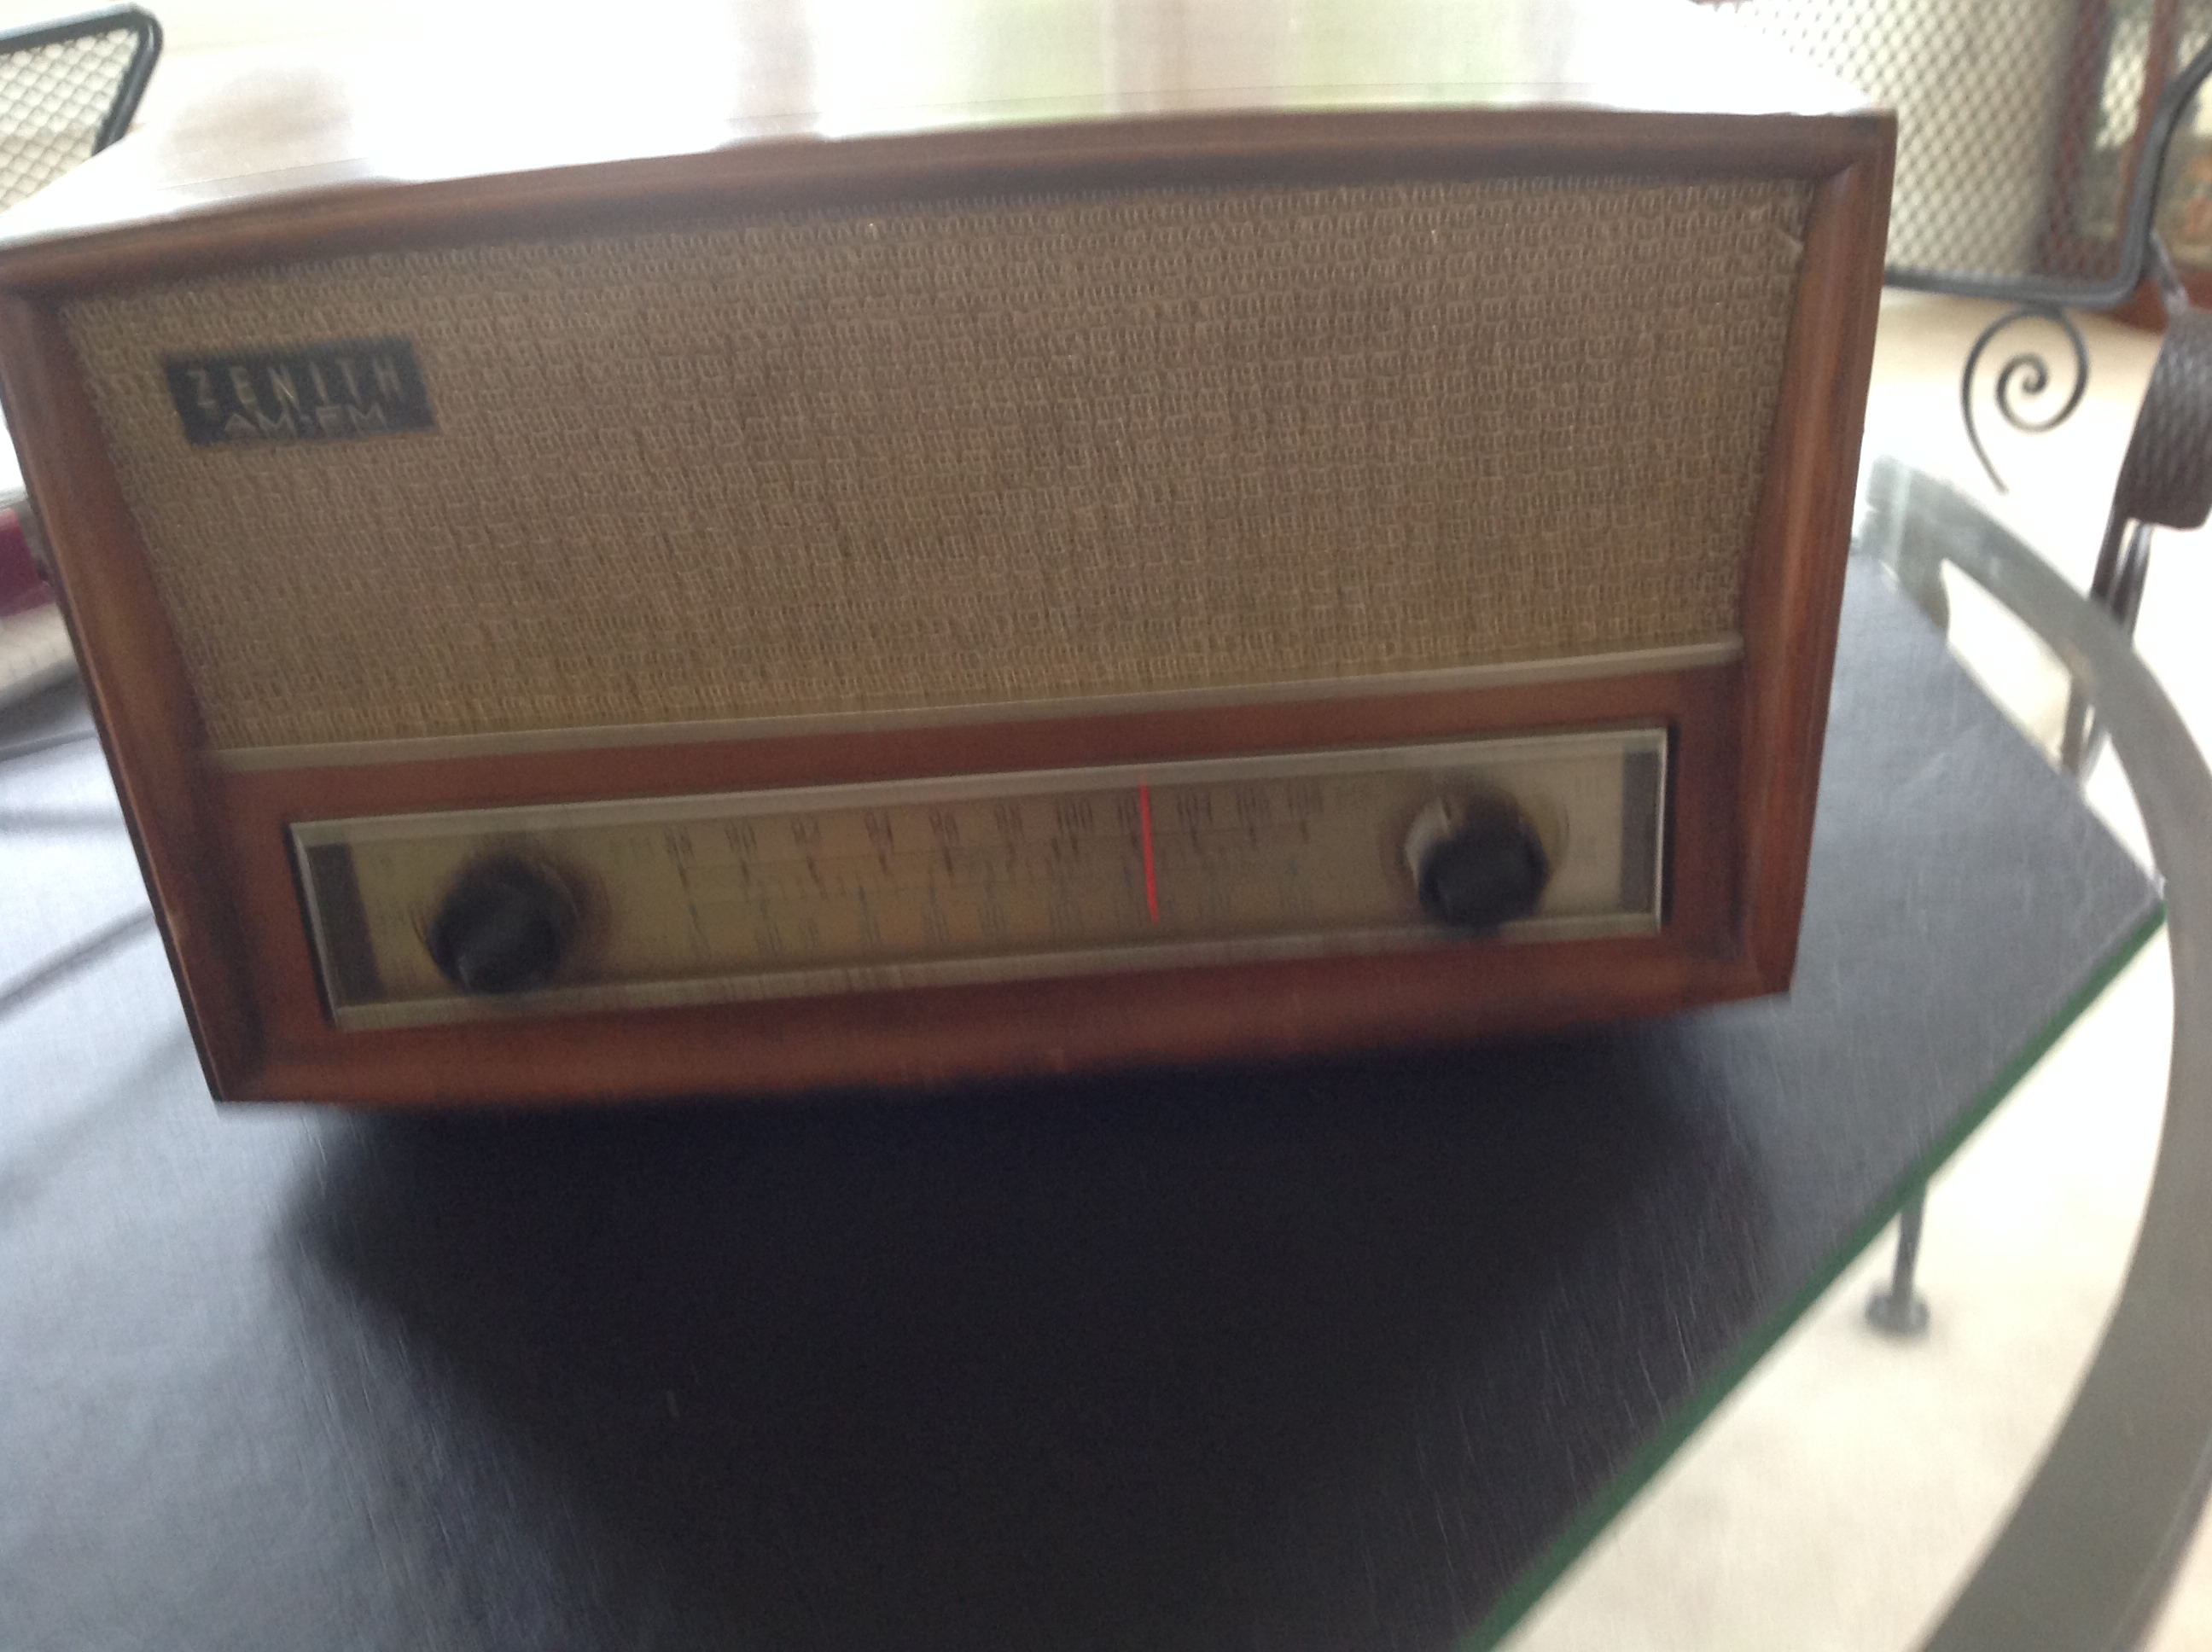 1950s Zenith Tube Long Distance Radio Model S-5222